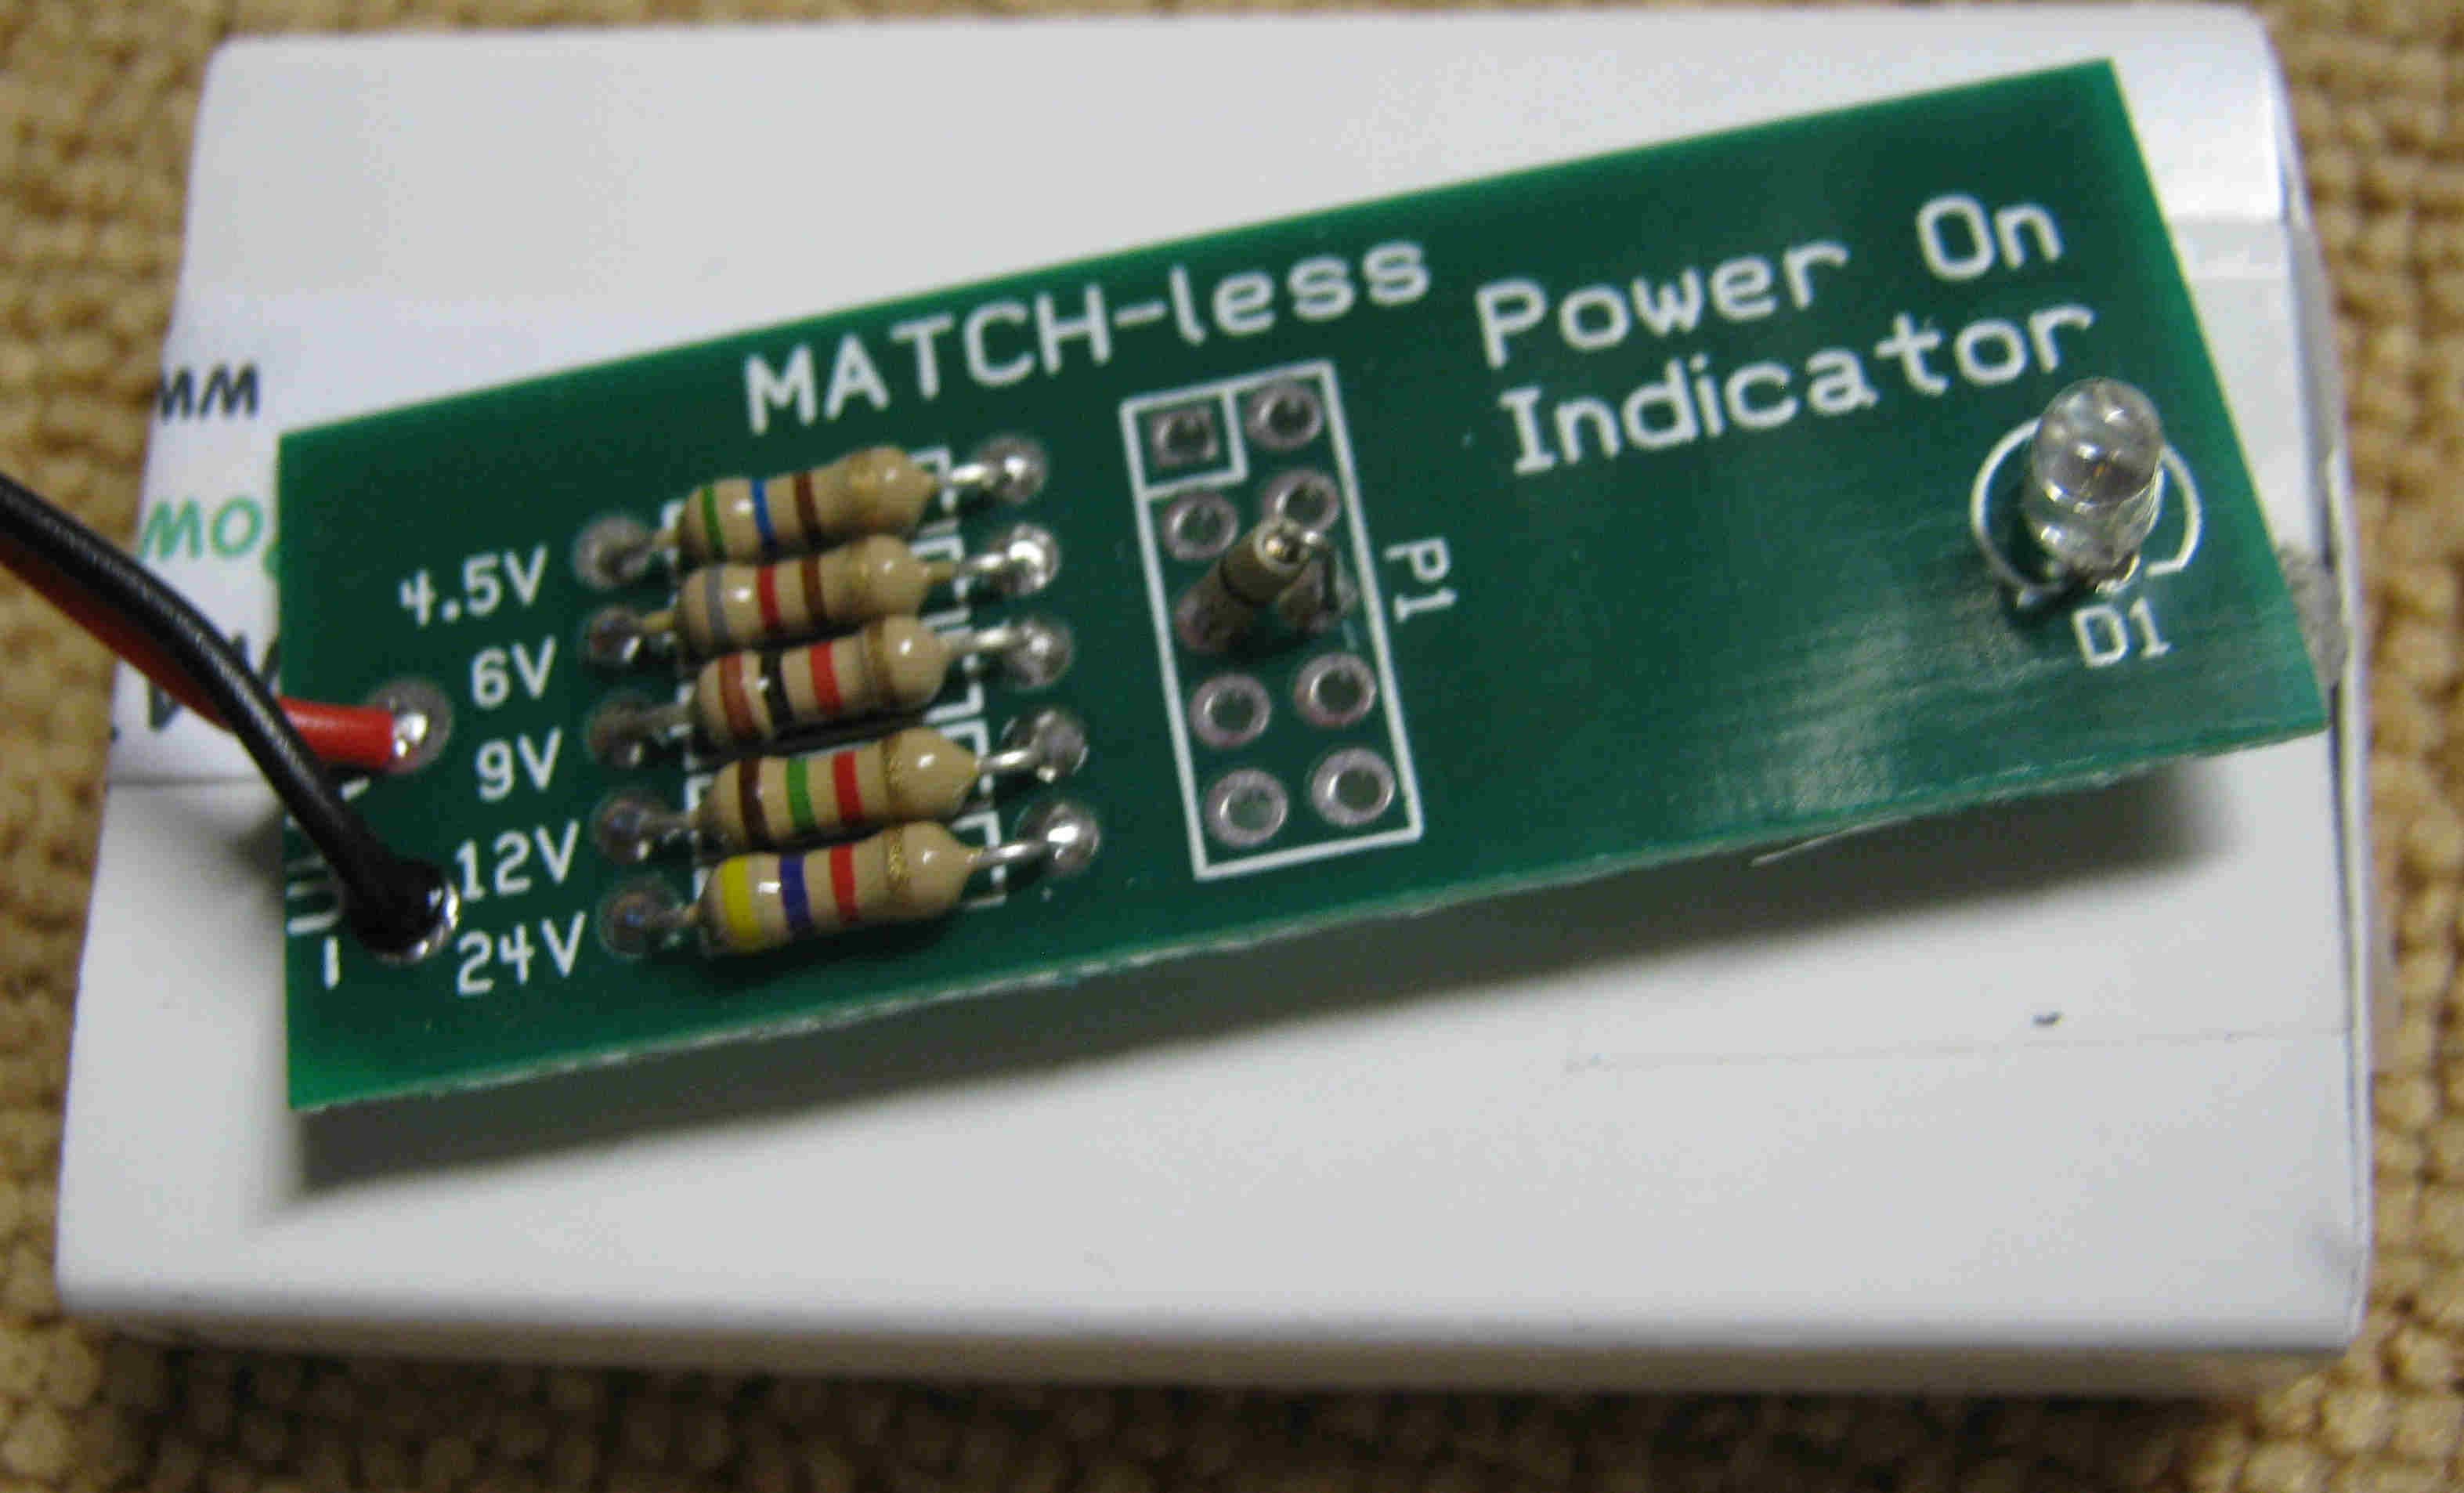 Picture of Match-less PowerON LED